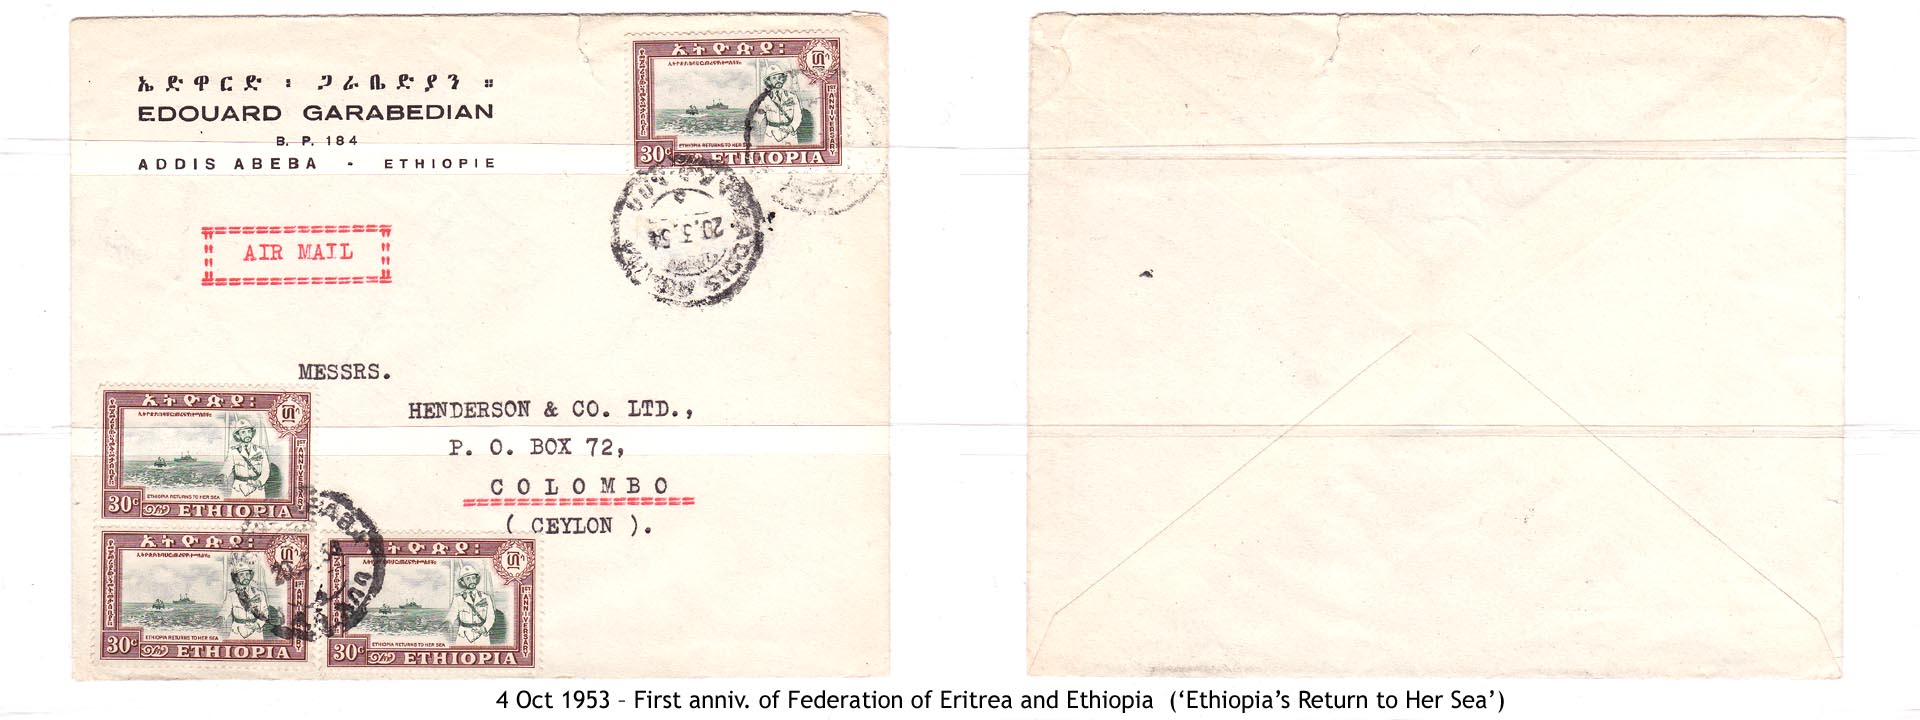 19531004 – First anniv. of Federation of Eritrea and Ethiopia ('Ethiopia's Return to Her Sea')